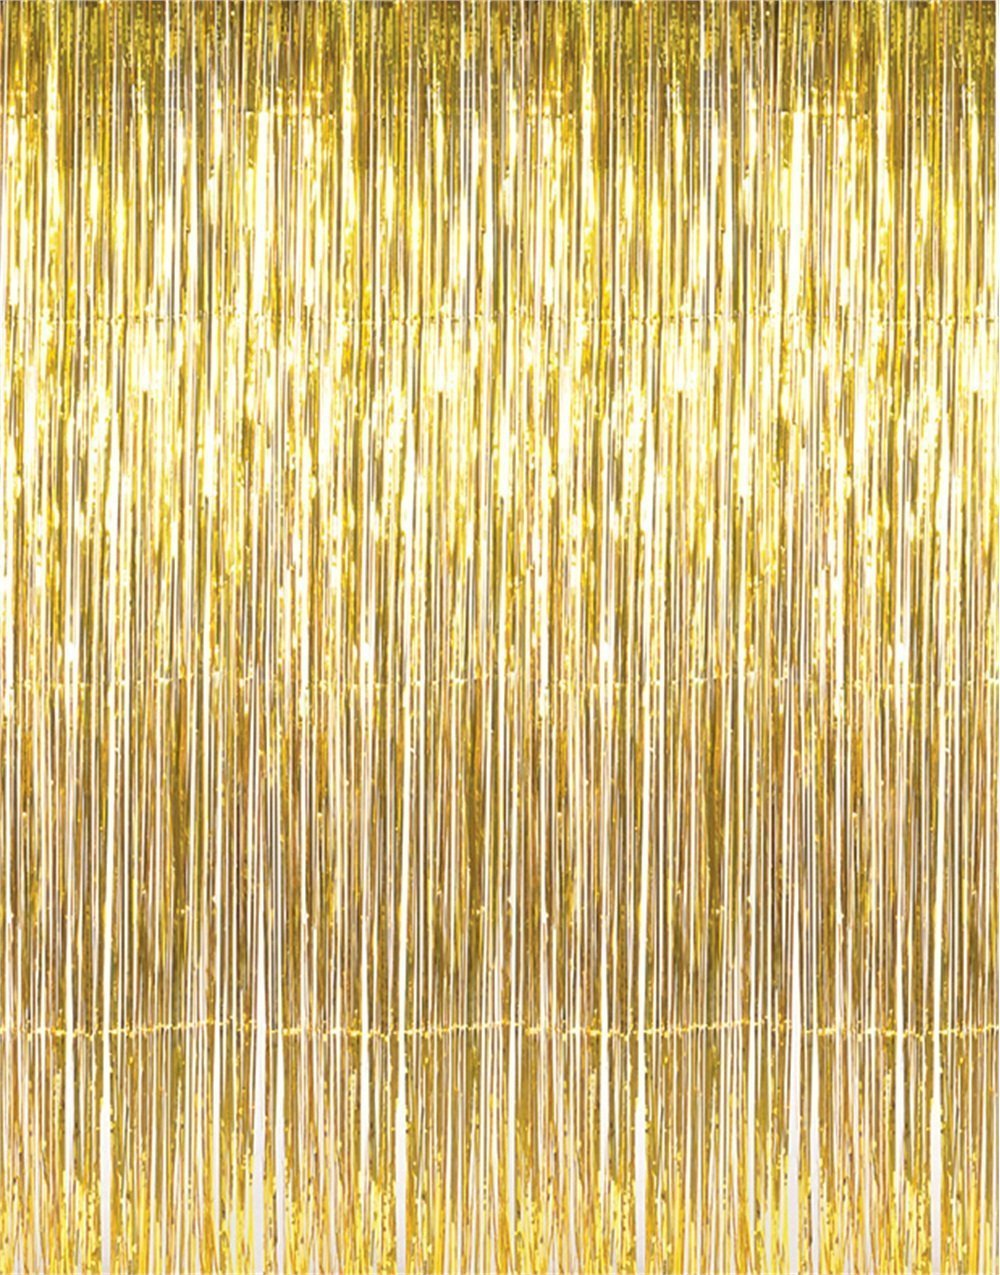 Metallic Tinsel Foil Fringe Curtains for Party Photo Backdrop Wedding Decor